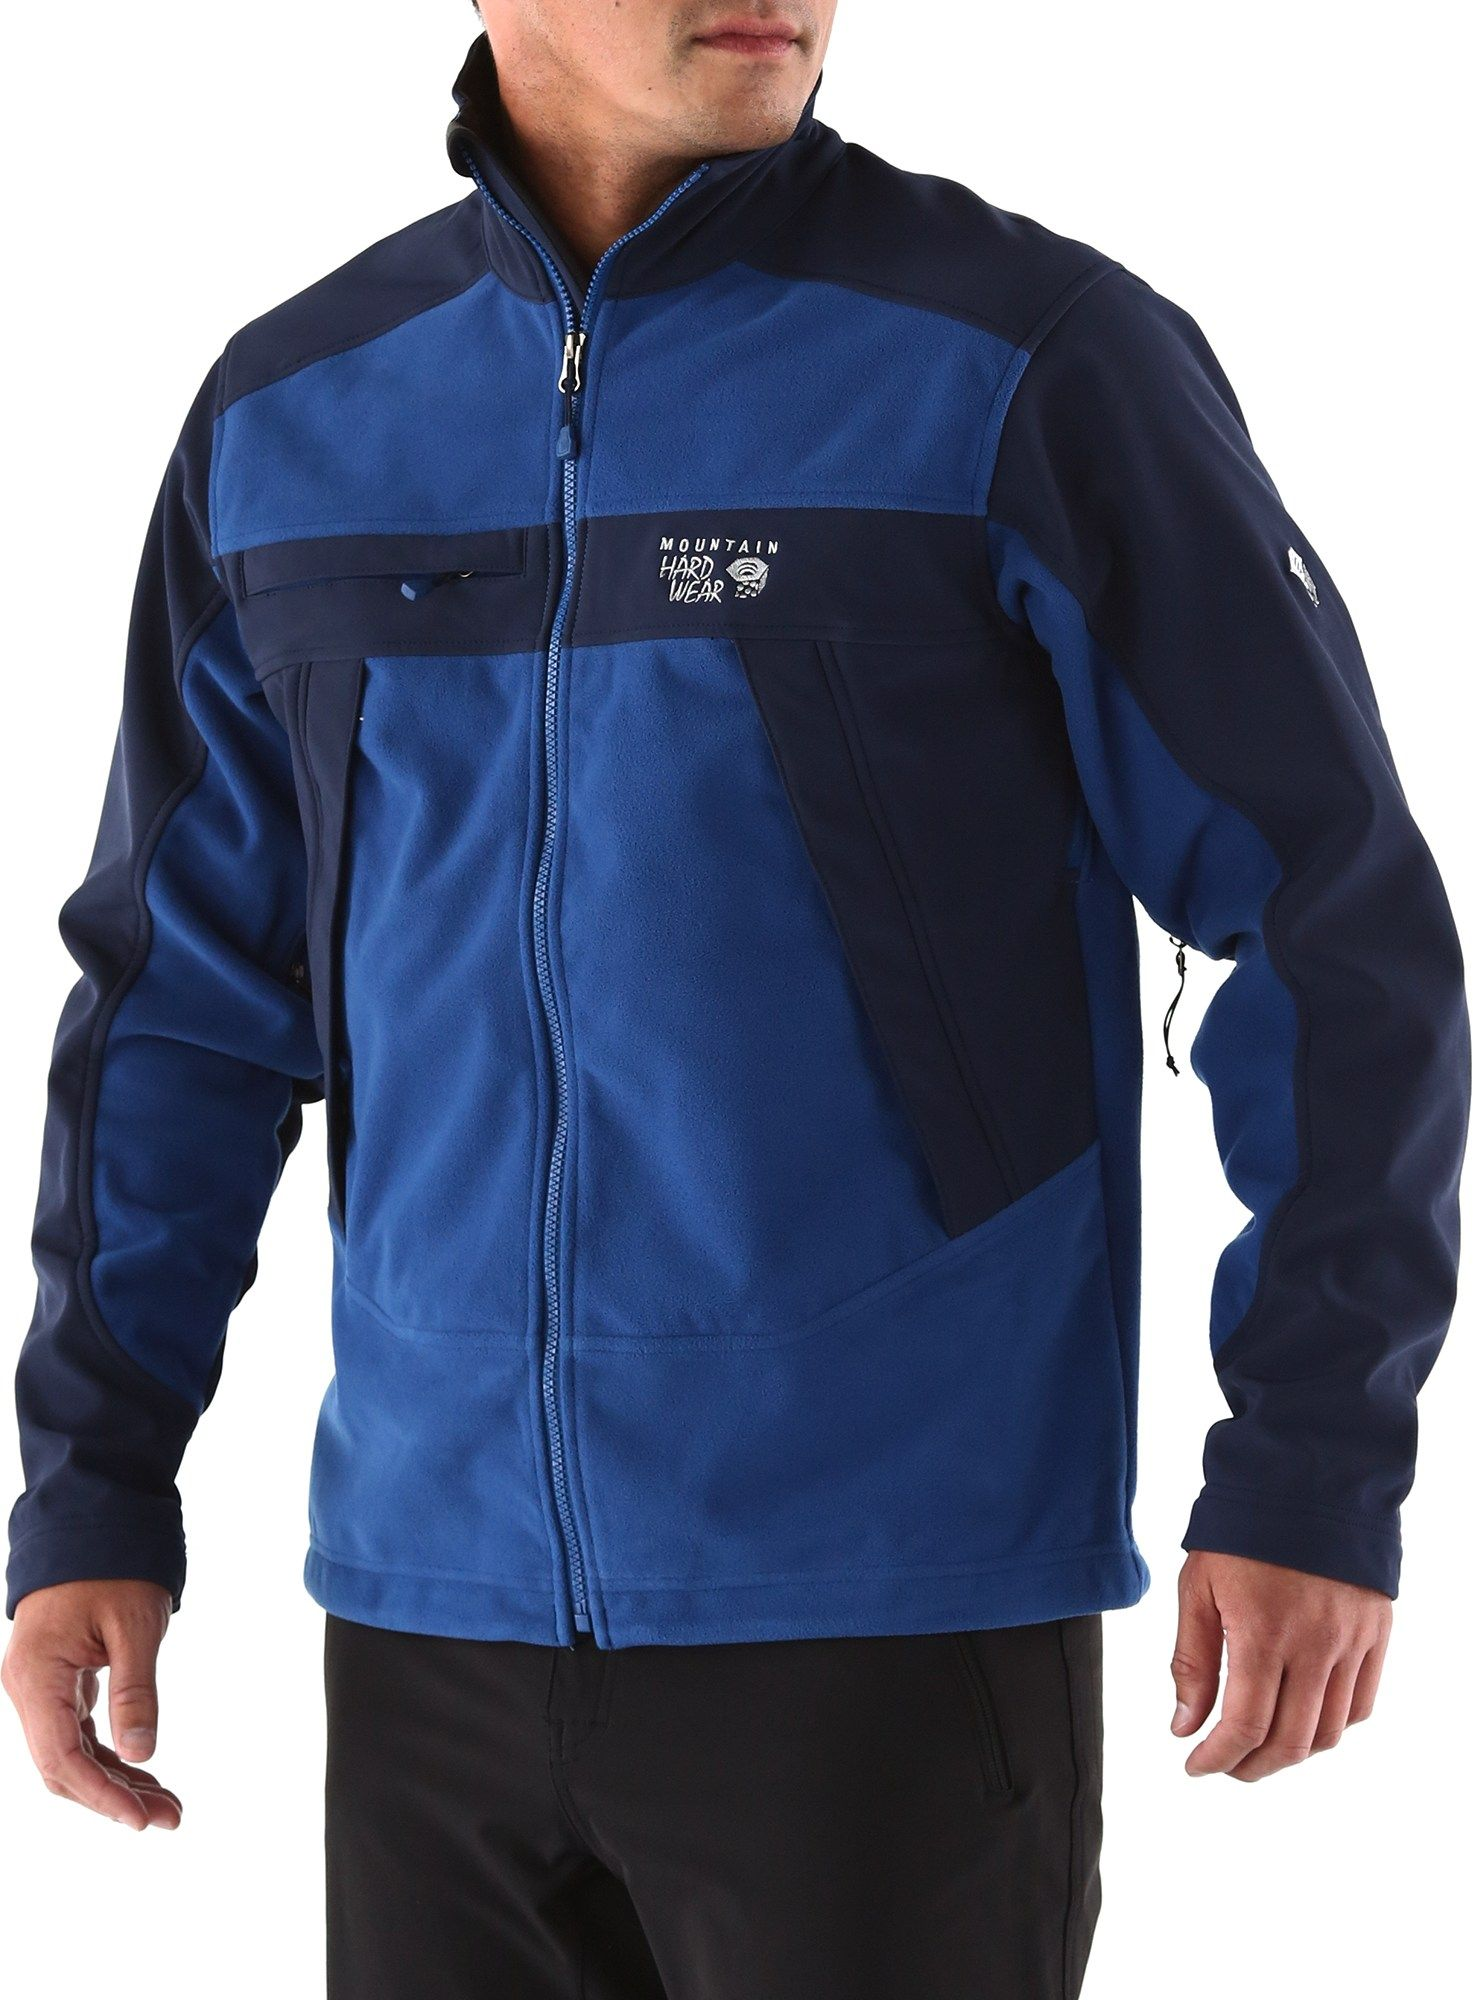 Mountain Hardwear Mountain Tech Jacket - Men's | REI Co-op ...